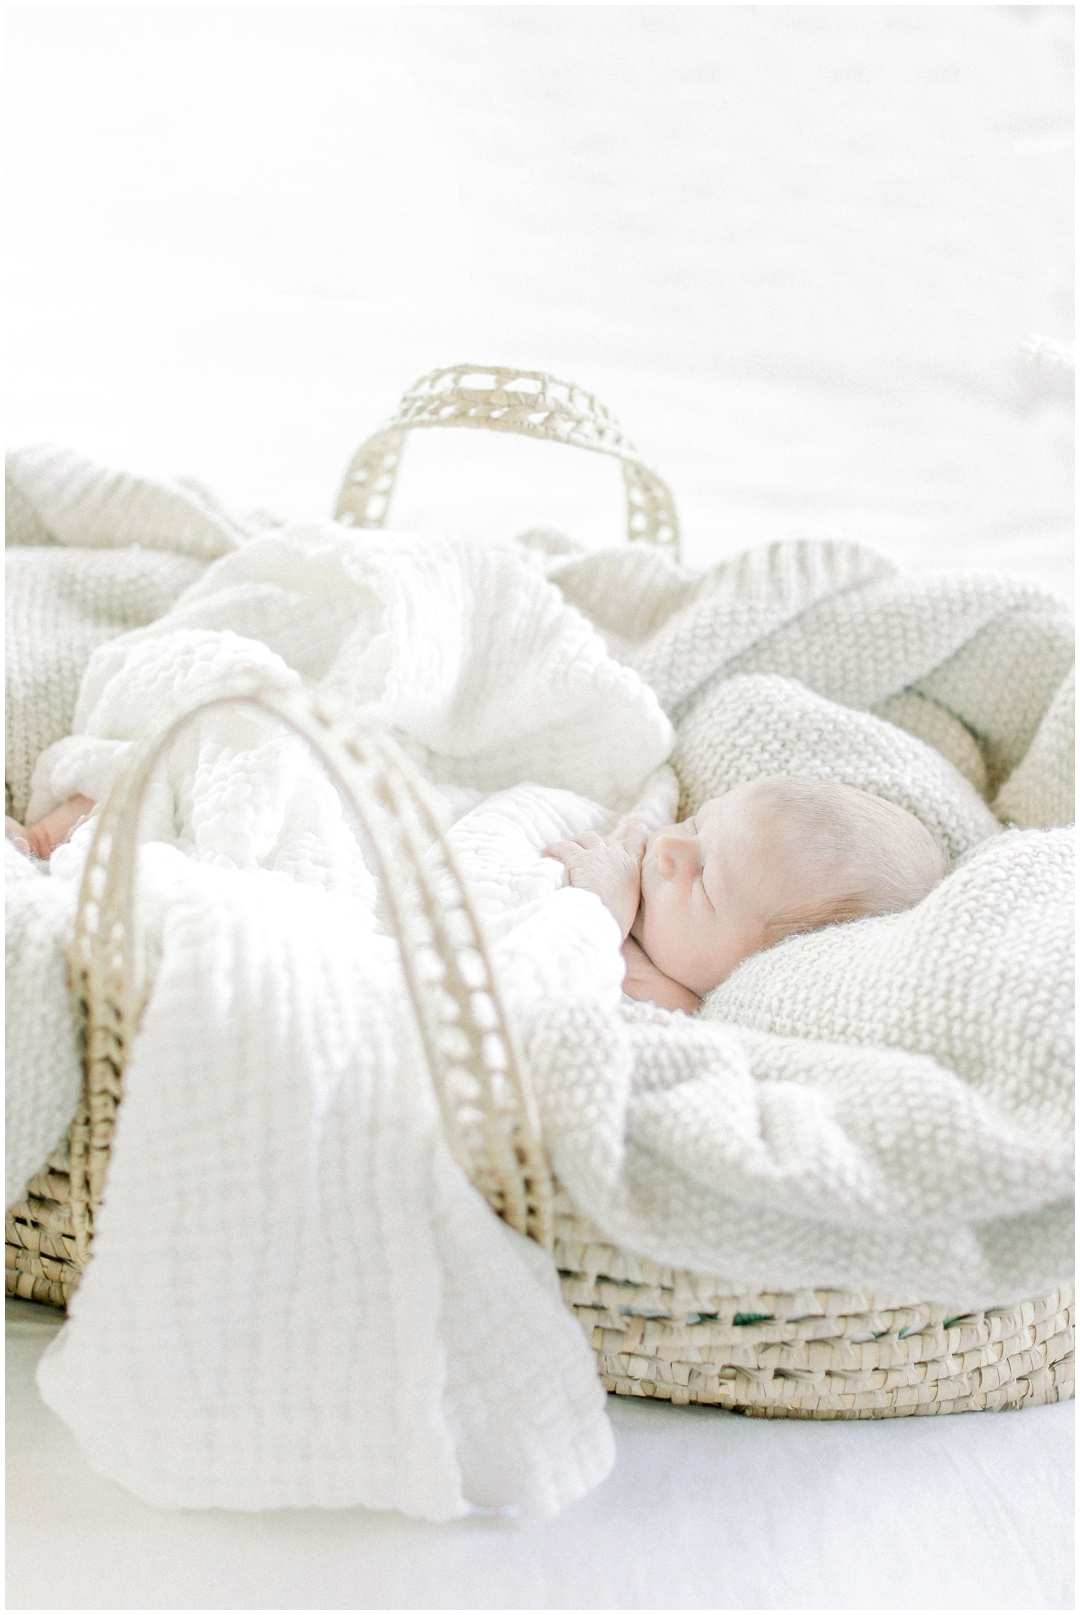 Newport_Beach_Newborn_Light_Airy_Natural_Photographer_Newport_Beach_Photographer_Orange_County_Family_Photographer_Cori_Kleckner_Photography_Huntington_Beach_Photographer_Family_OC_Newborn_Megan_Bradley_Schueneman_Charlie_Schueneman_Dean__3609.jpg